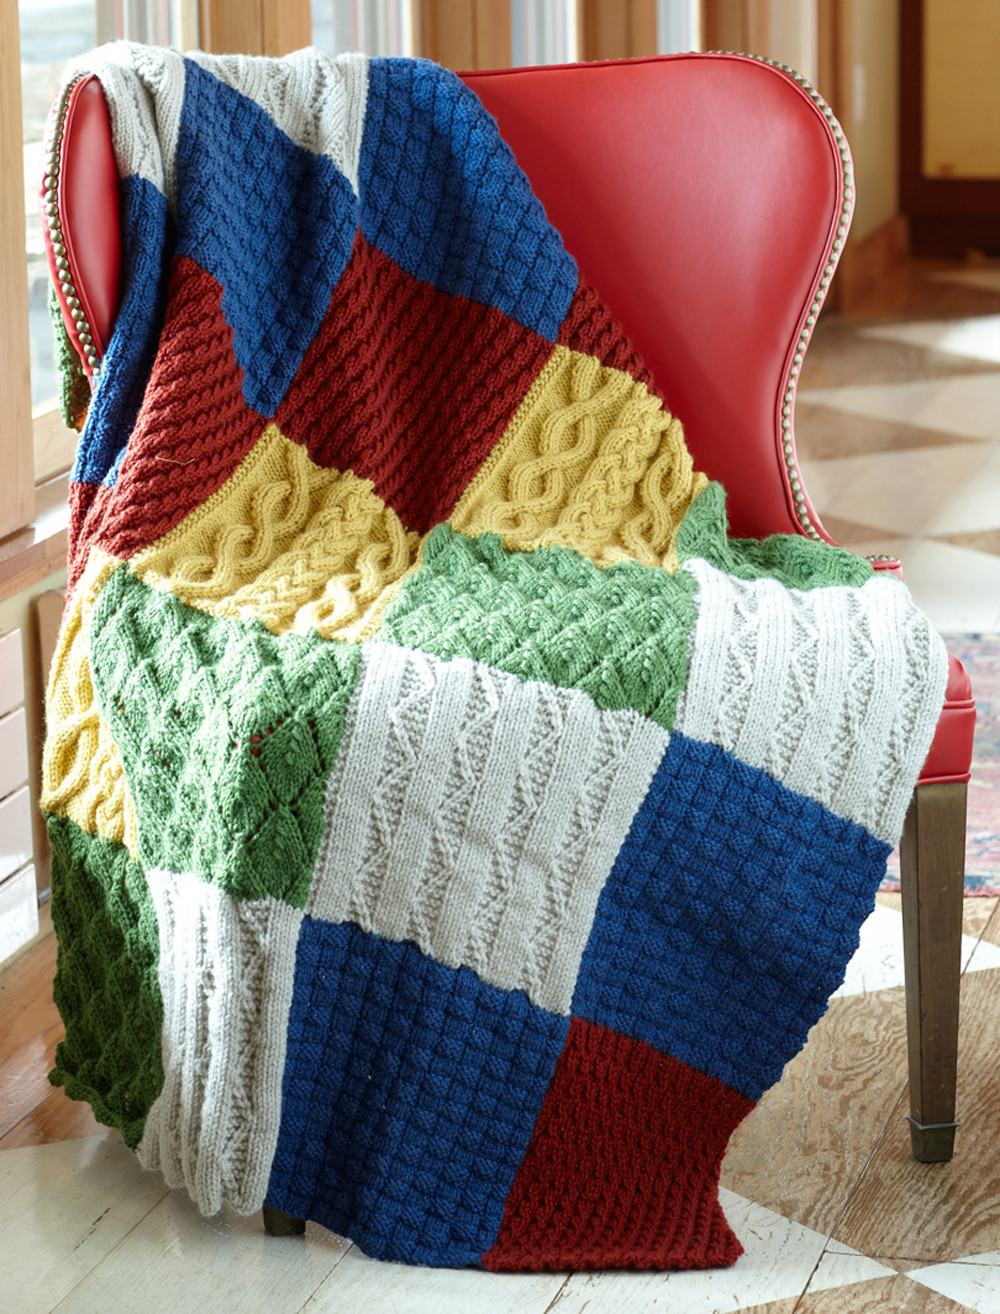 Free Crochet Throw Patterns Inspirational Patch Sampler Throw Of Contemporary 44 Pics Free Crochet Throw Patterns